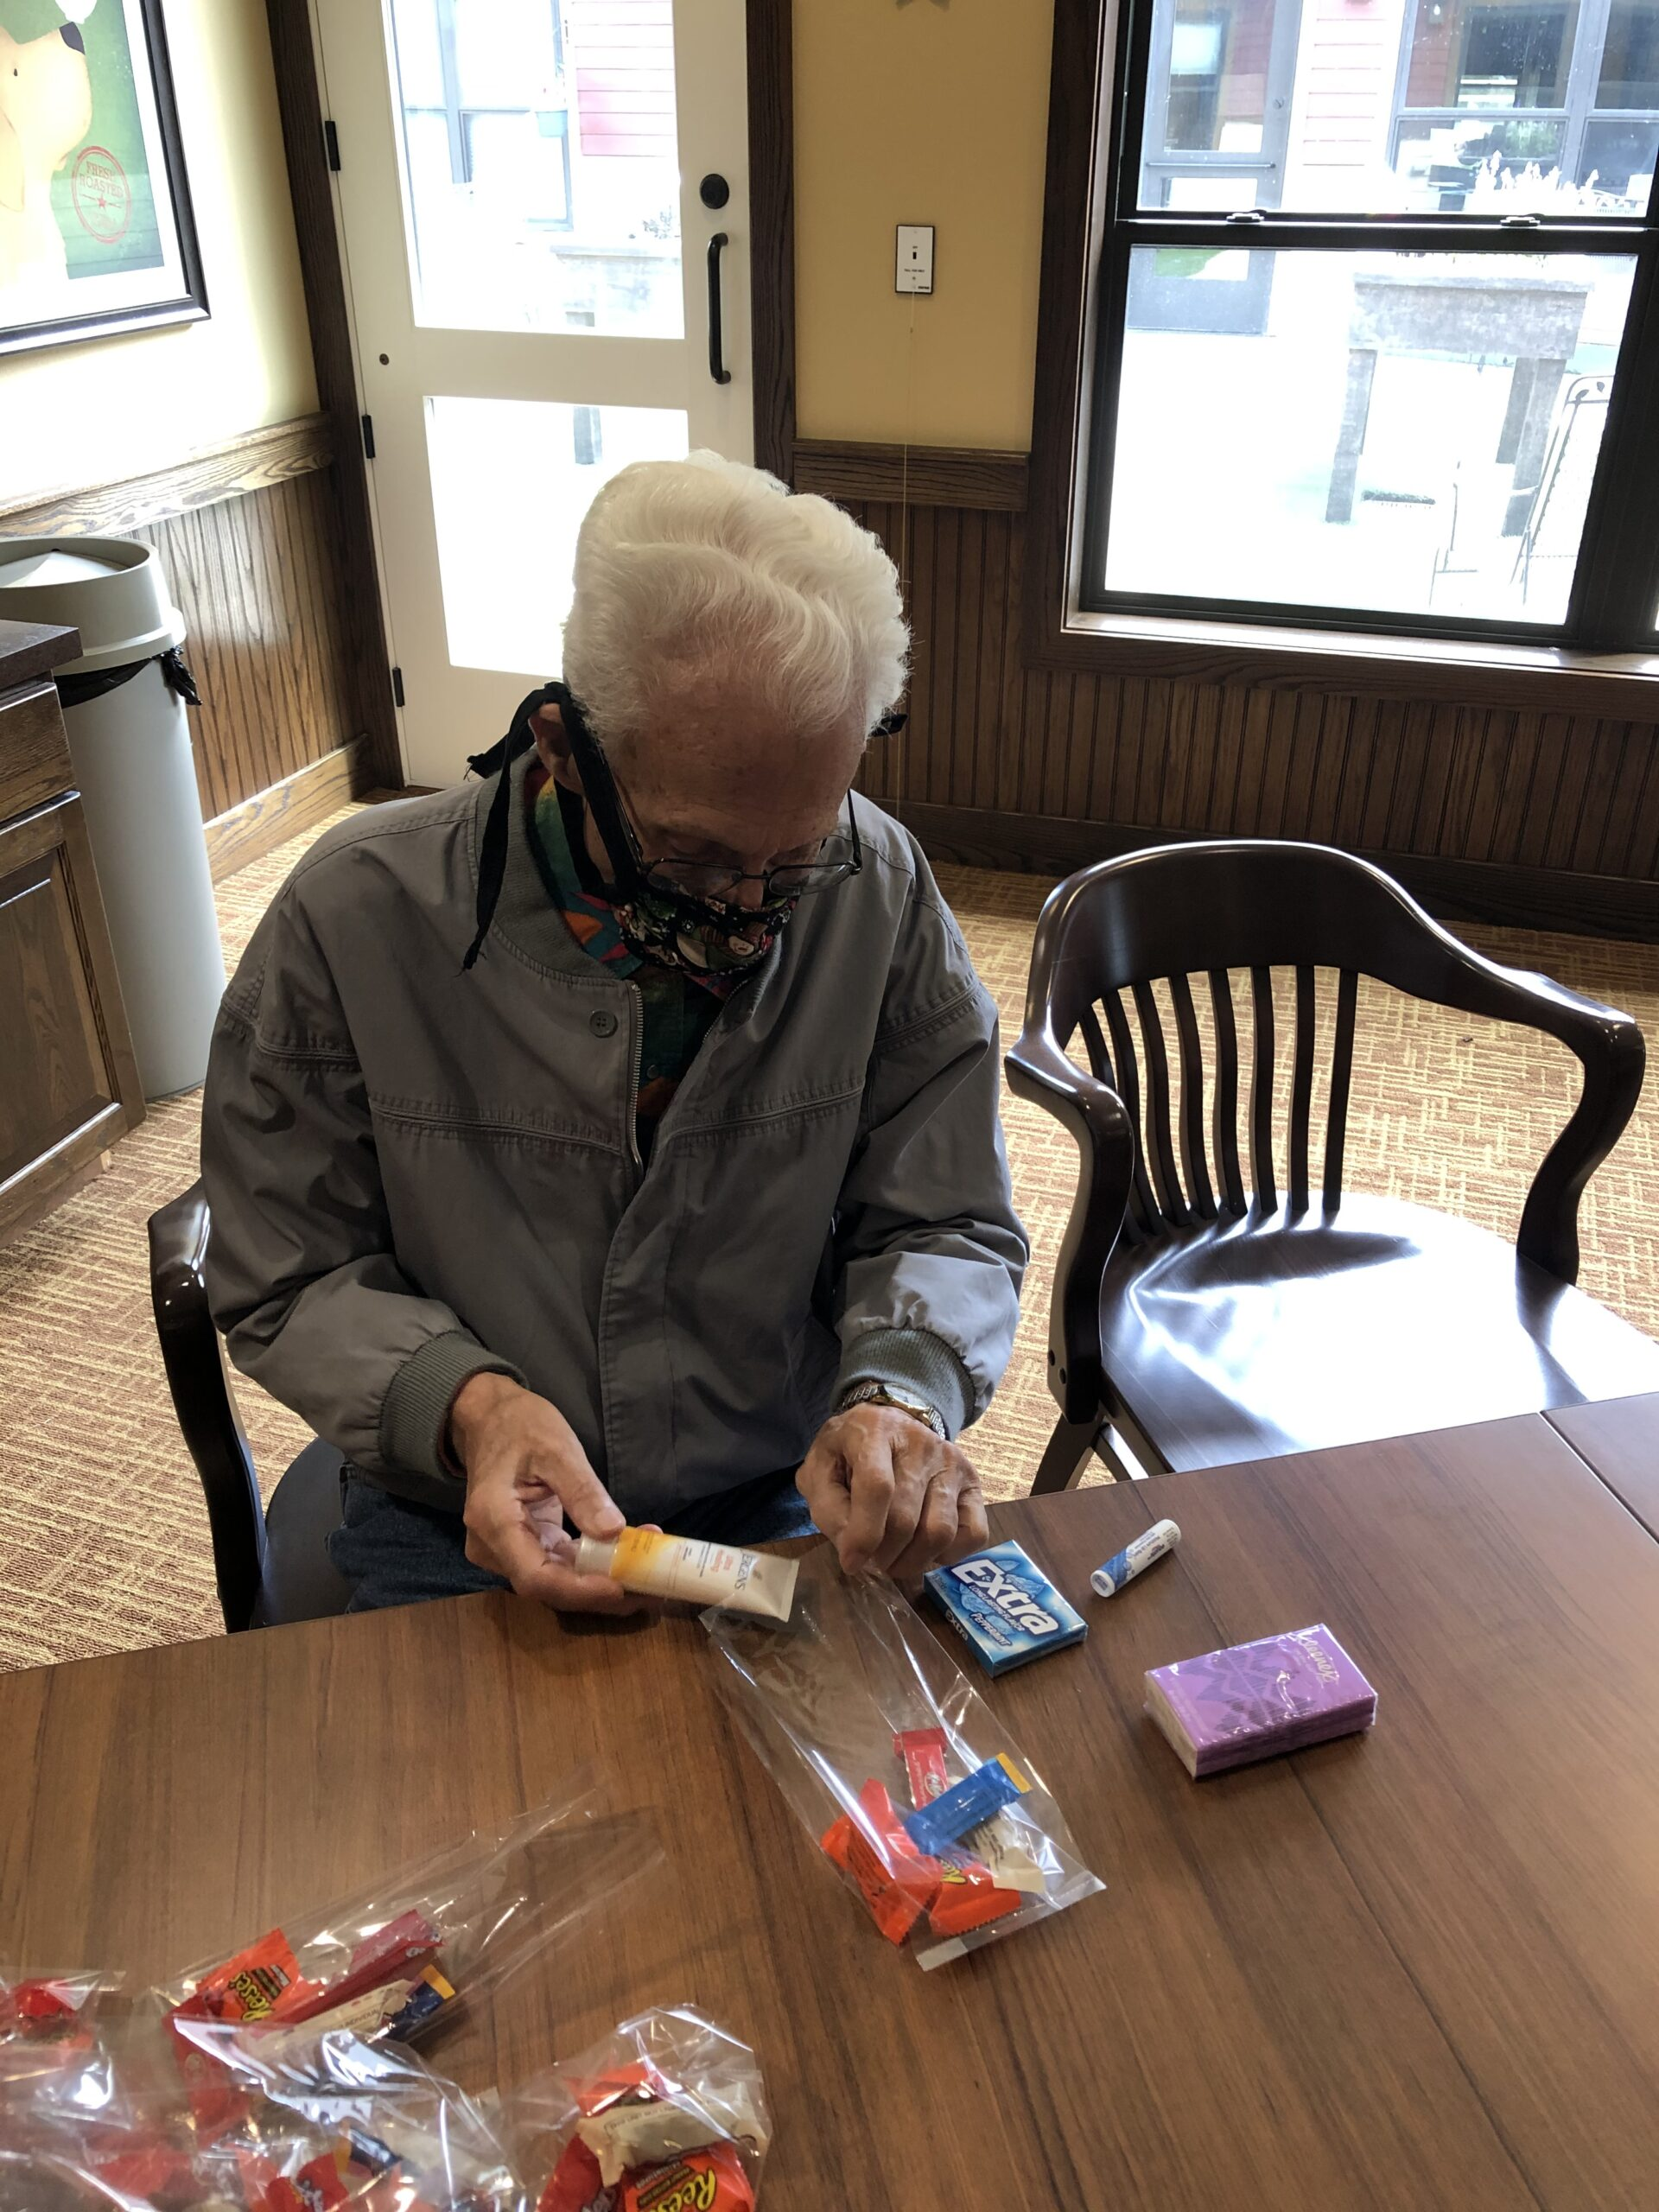 Caring is EssentiAL! For assisted living week, residents made care packages for our Memory Care staff. Lyle sure was helpful!